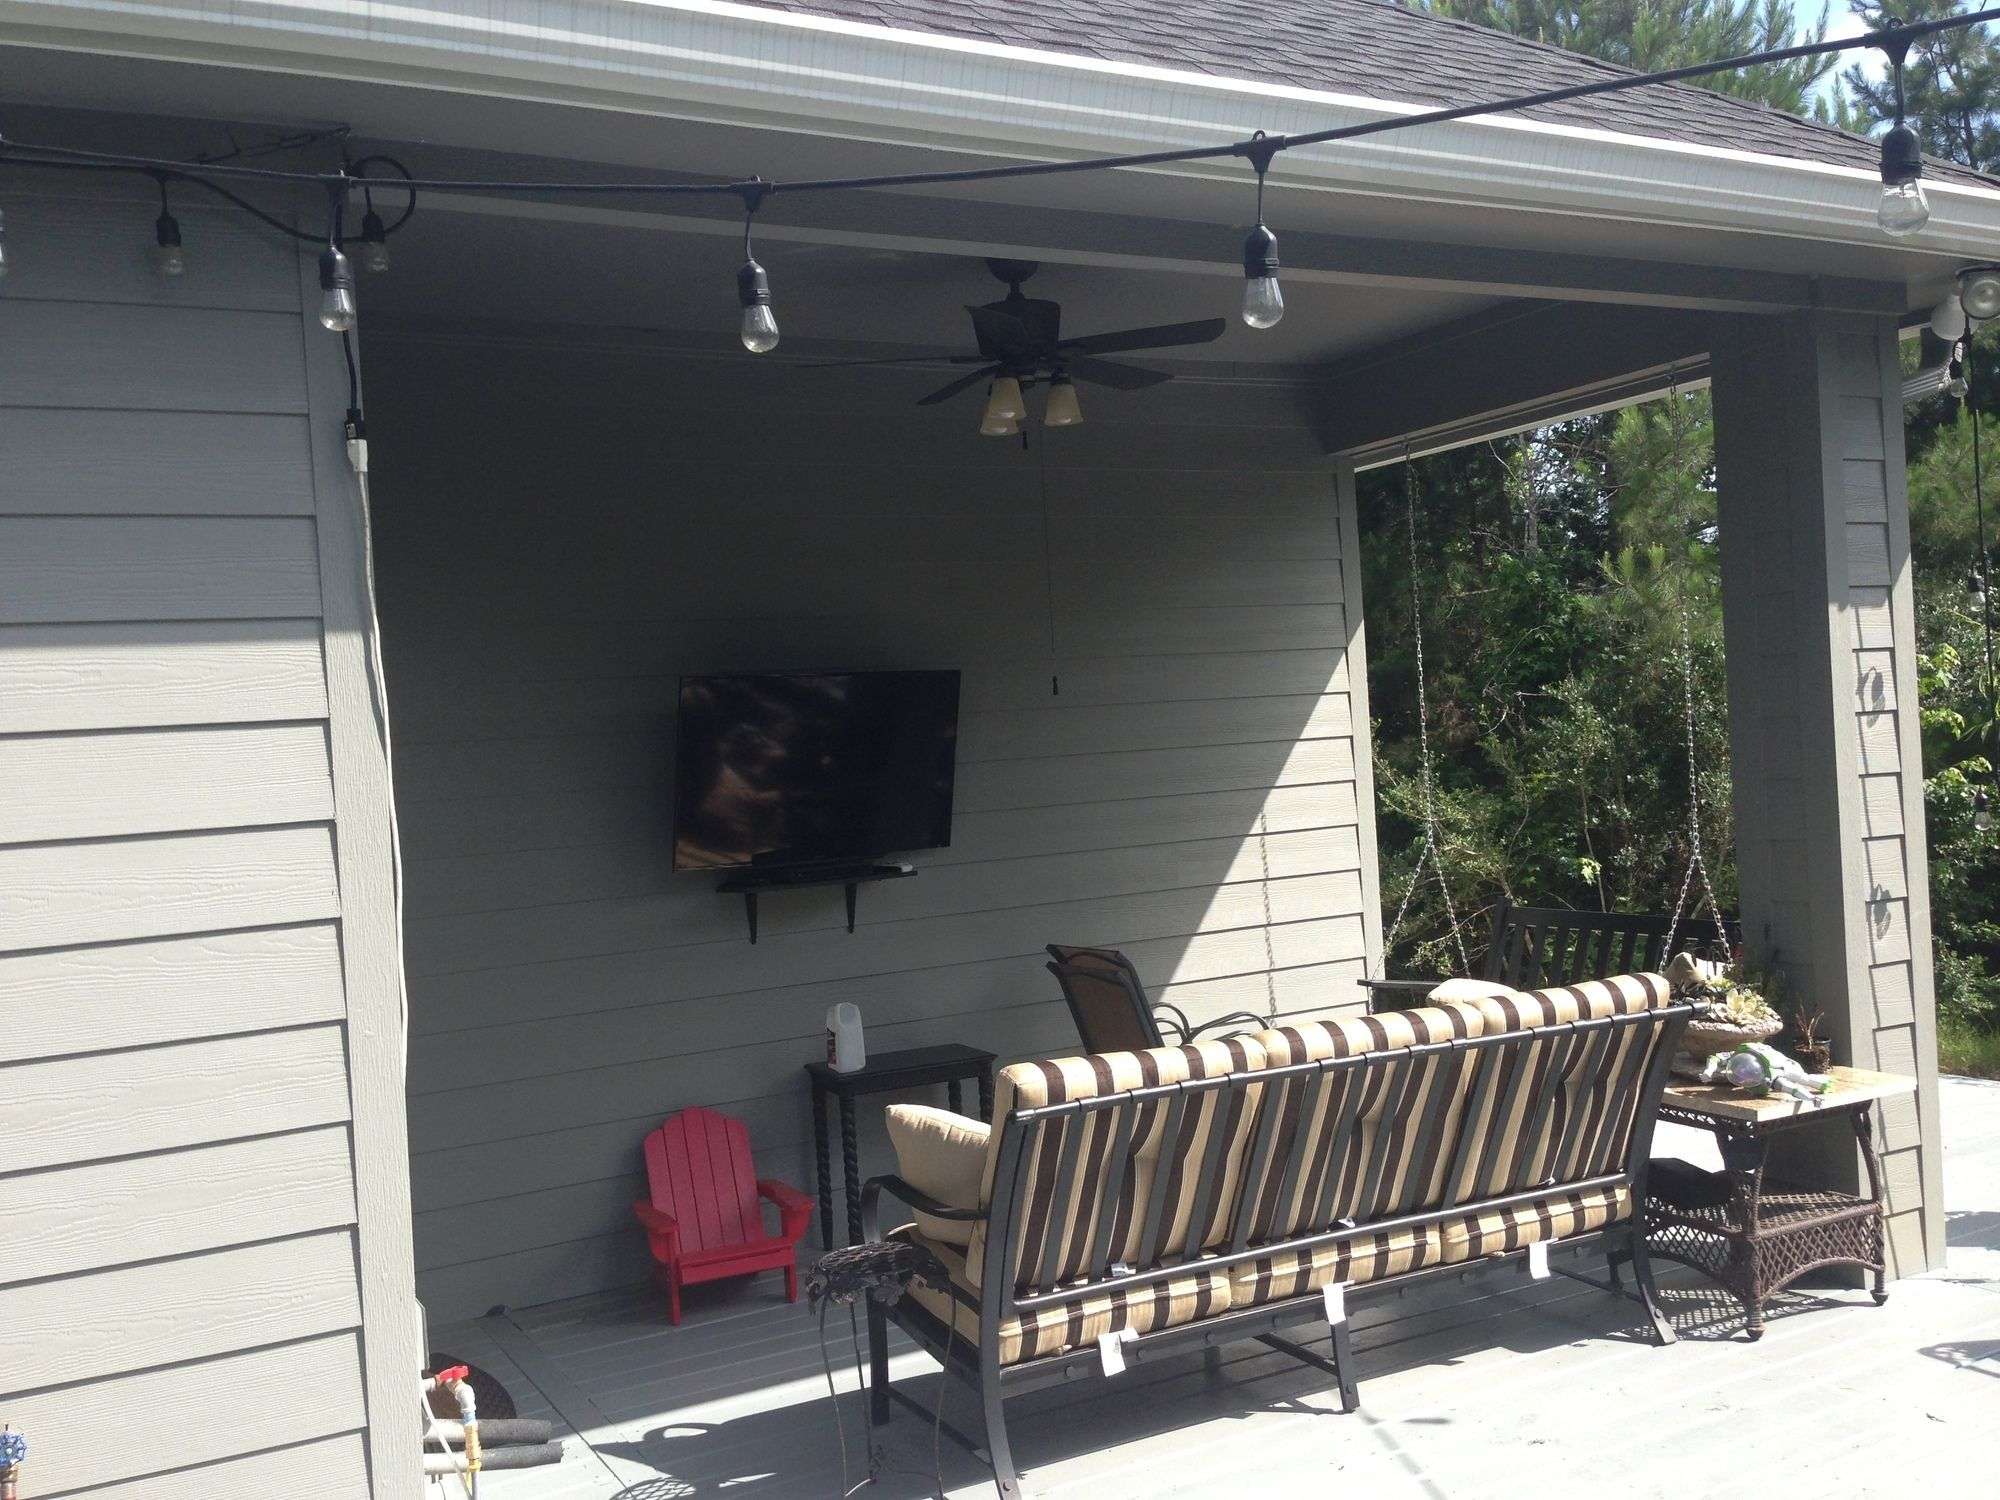 Patio Covers - Primo Outdoor Living on Primo Outdoor Living  id=75899